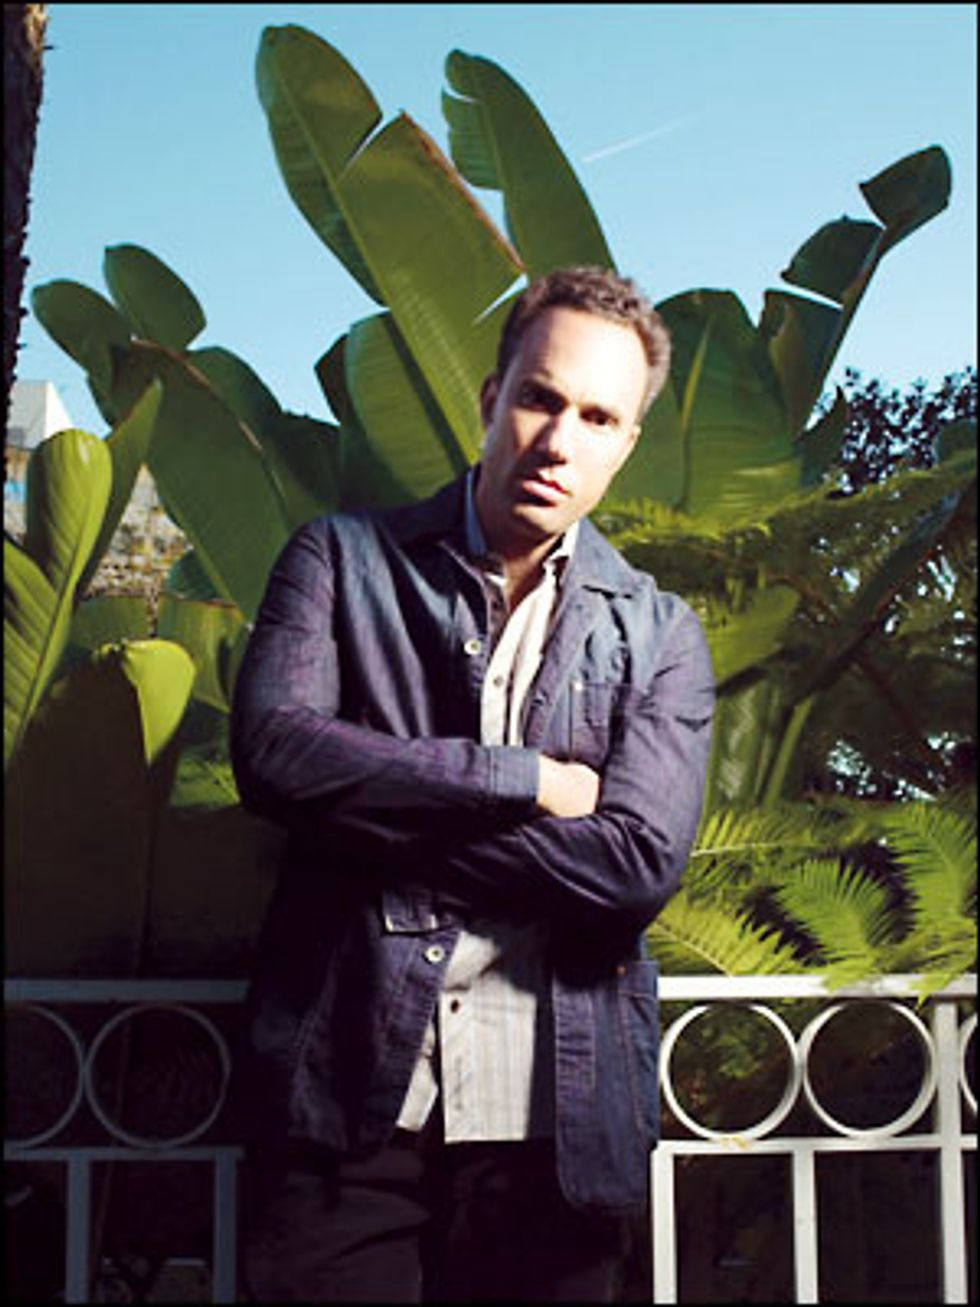 Beautiful People 2004: Roger Guenveur Smith